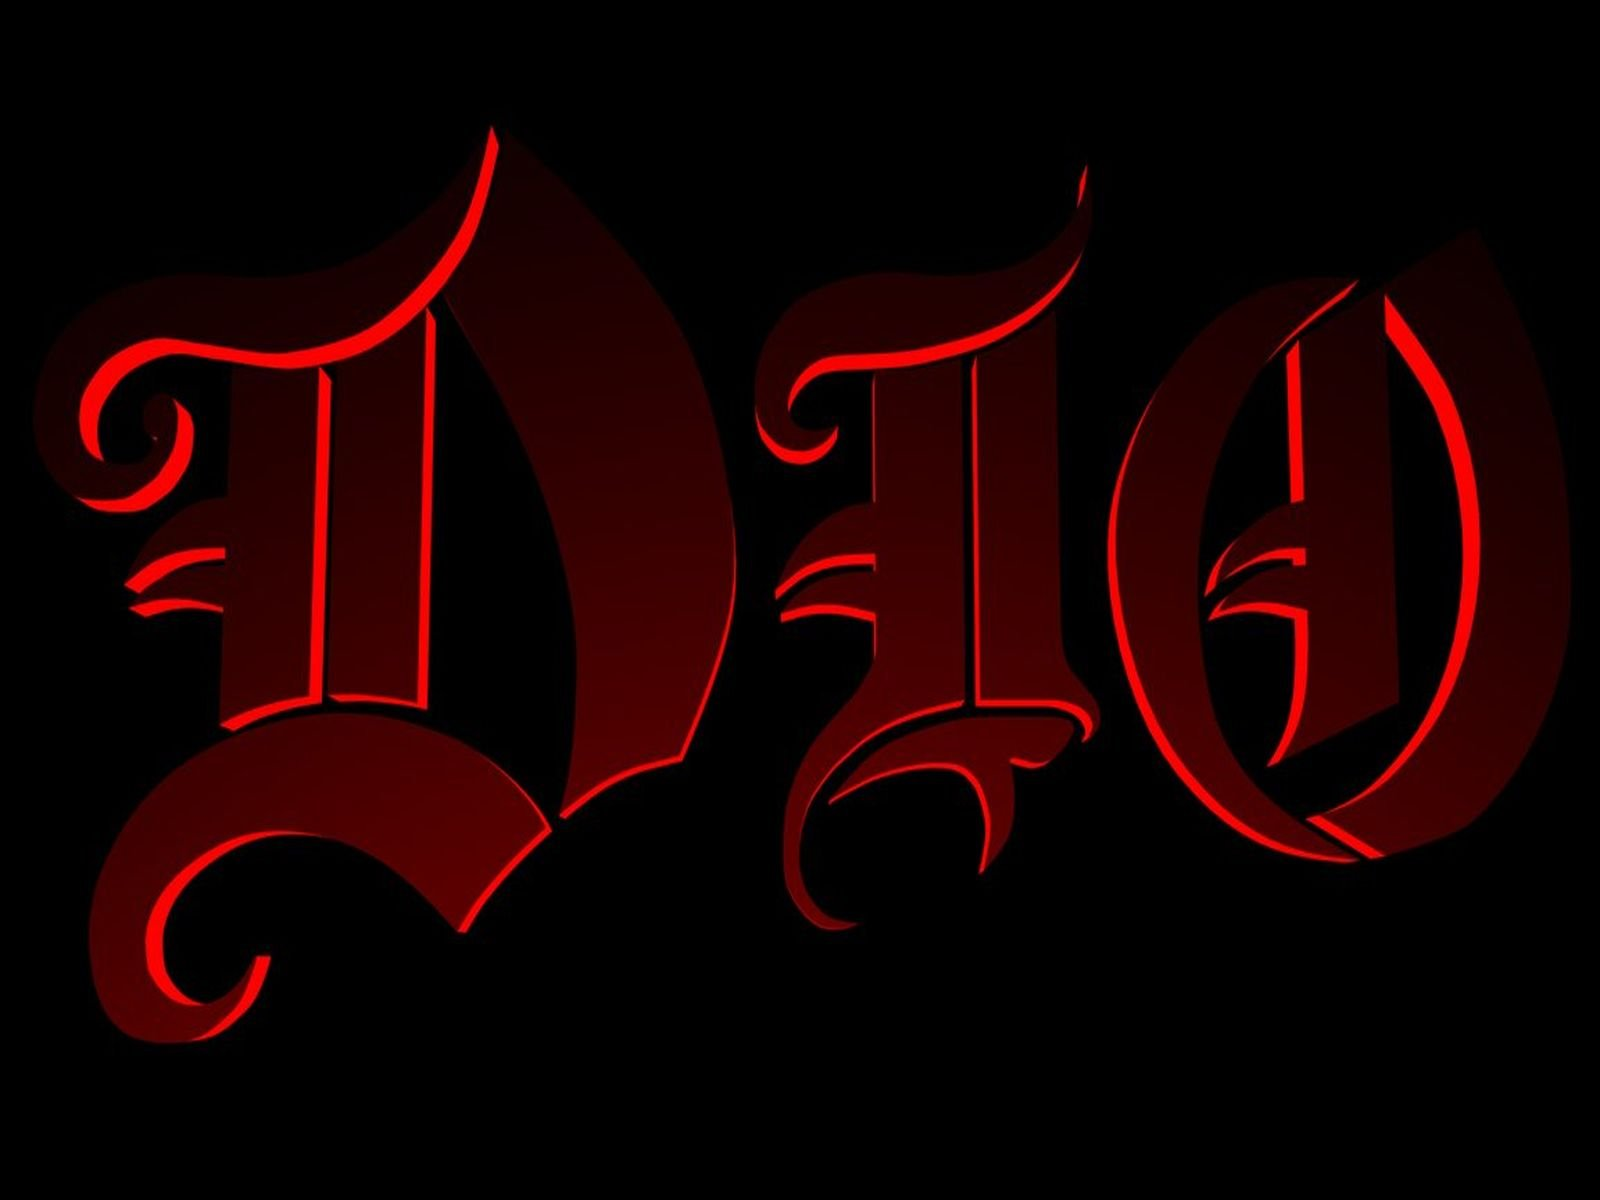 find best wallpapers  Twisteds Wallpapers  Ronnie James Dio